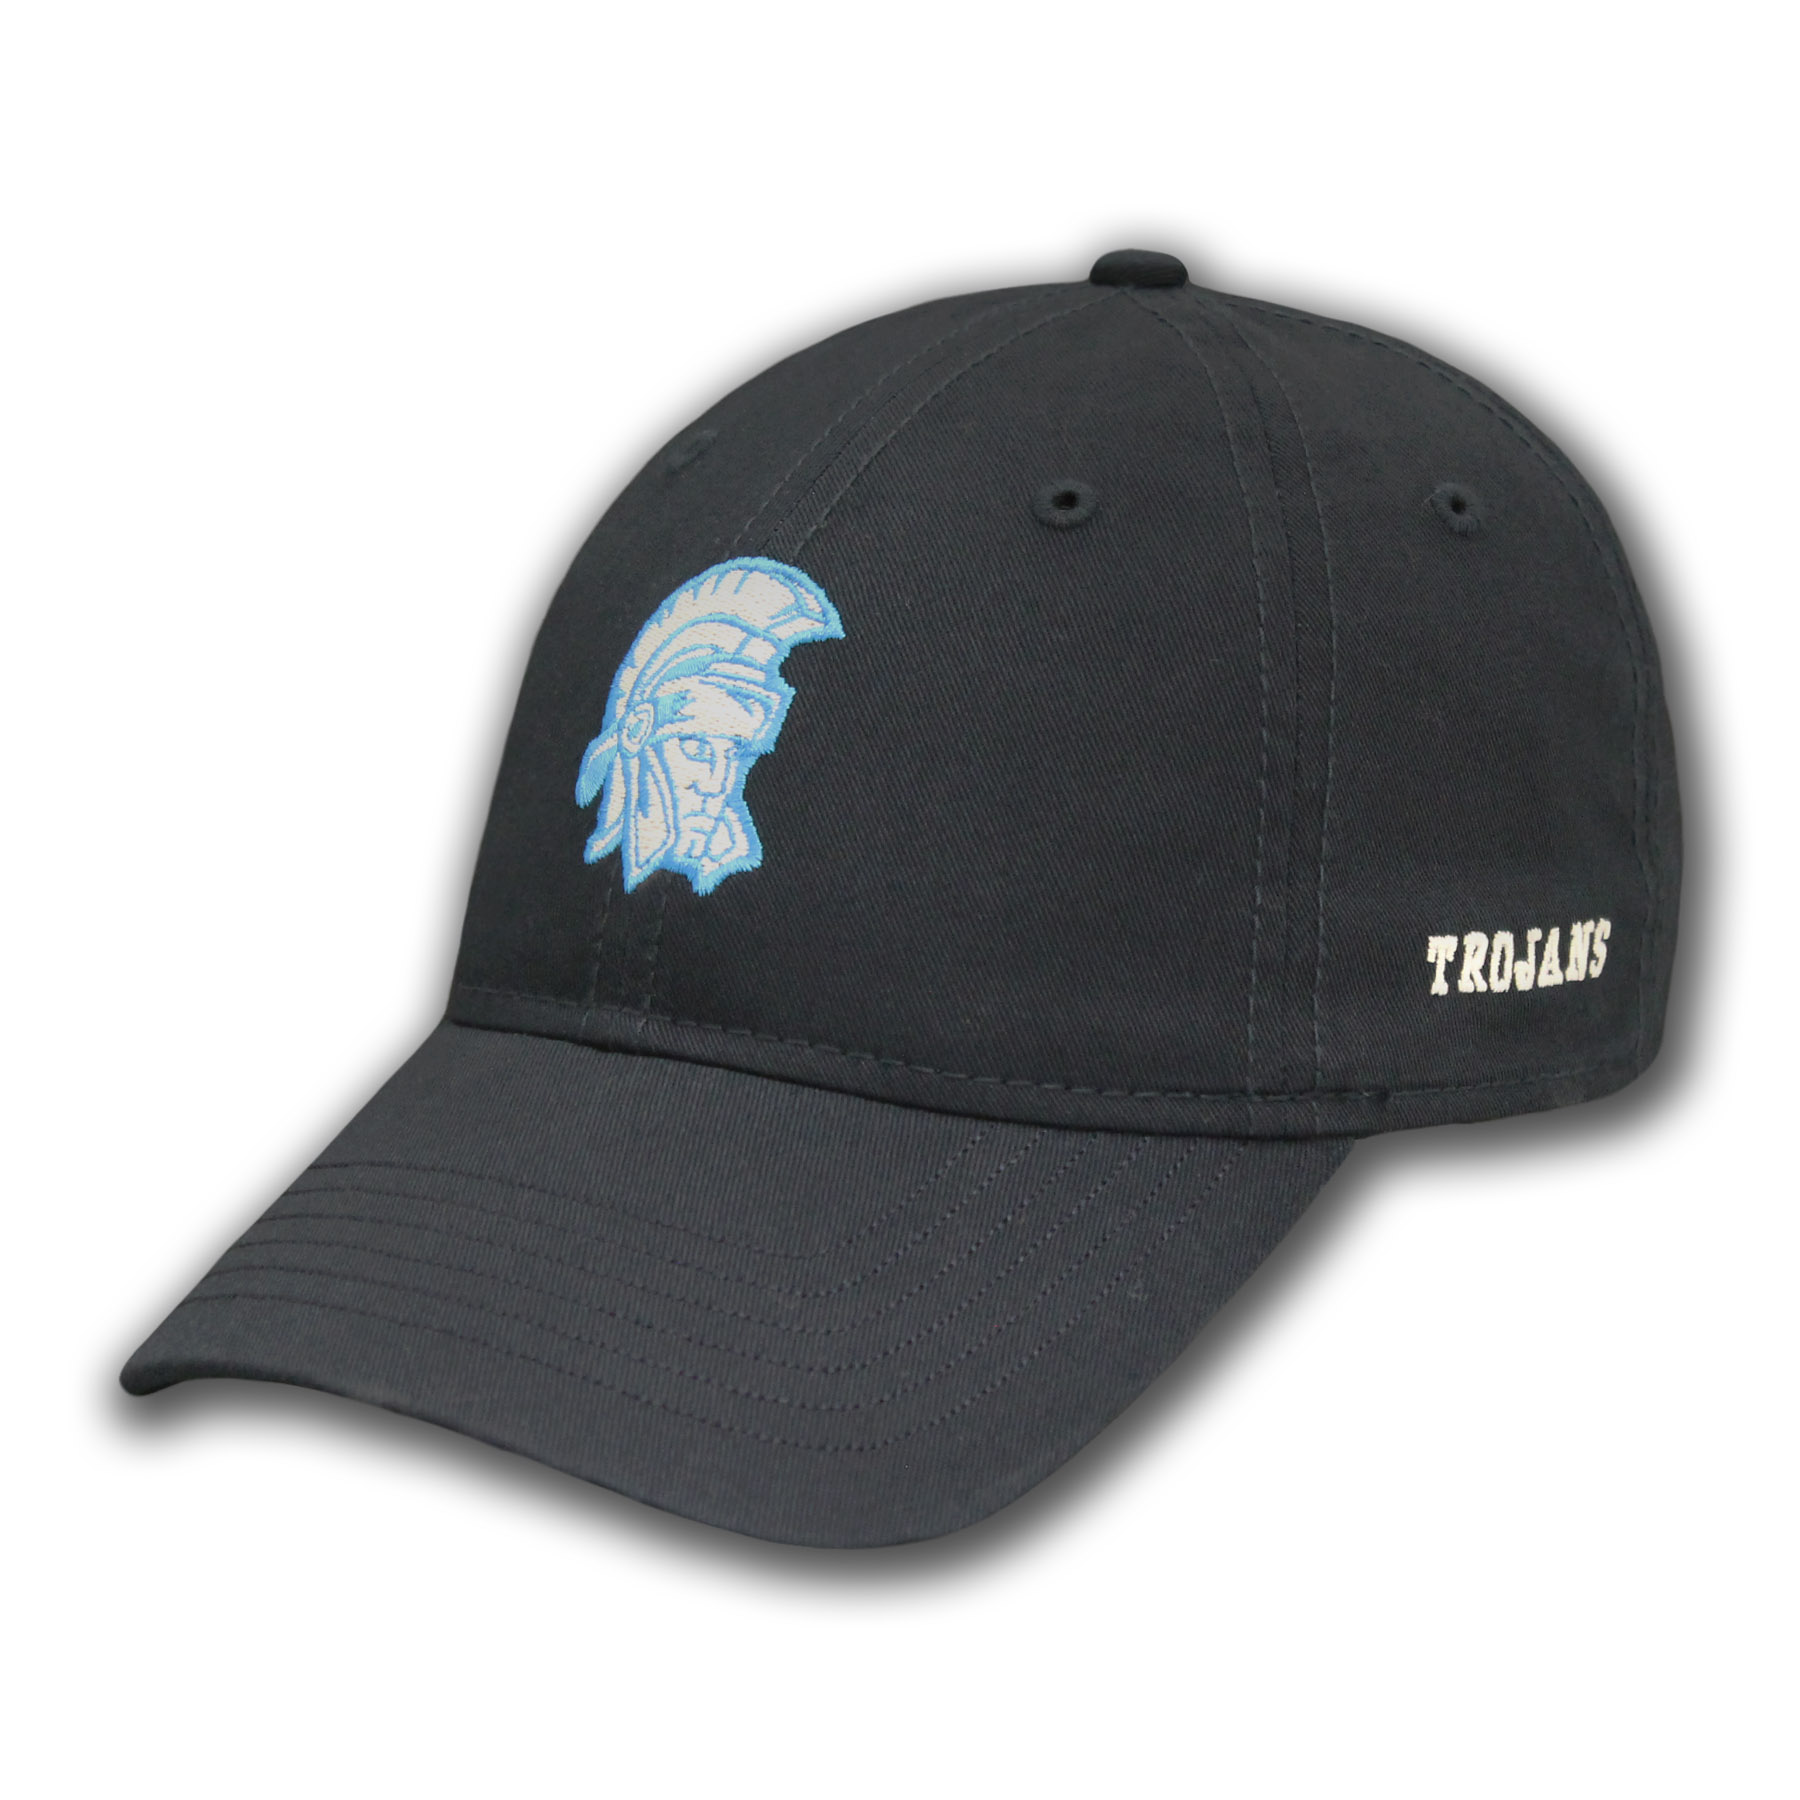 Trojans Adjustabel Hat